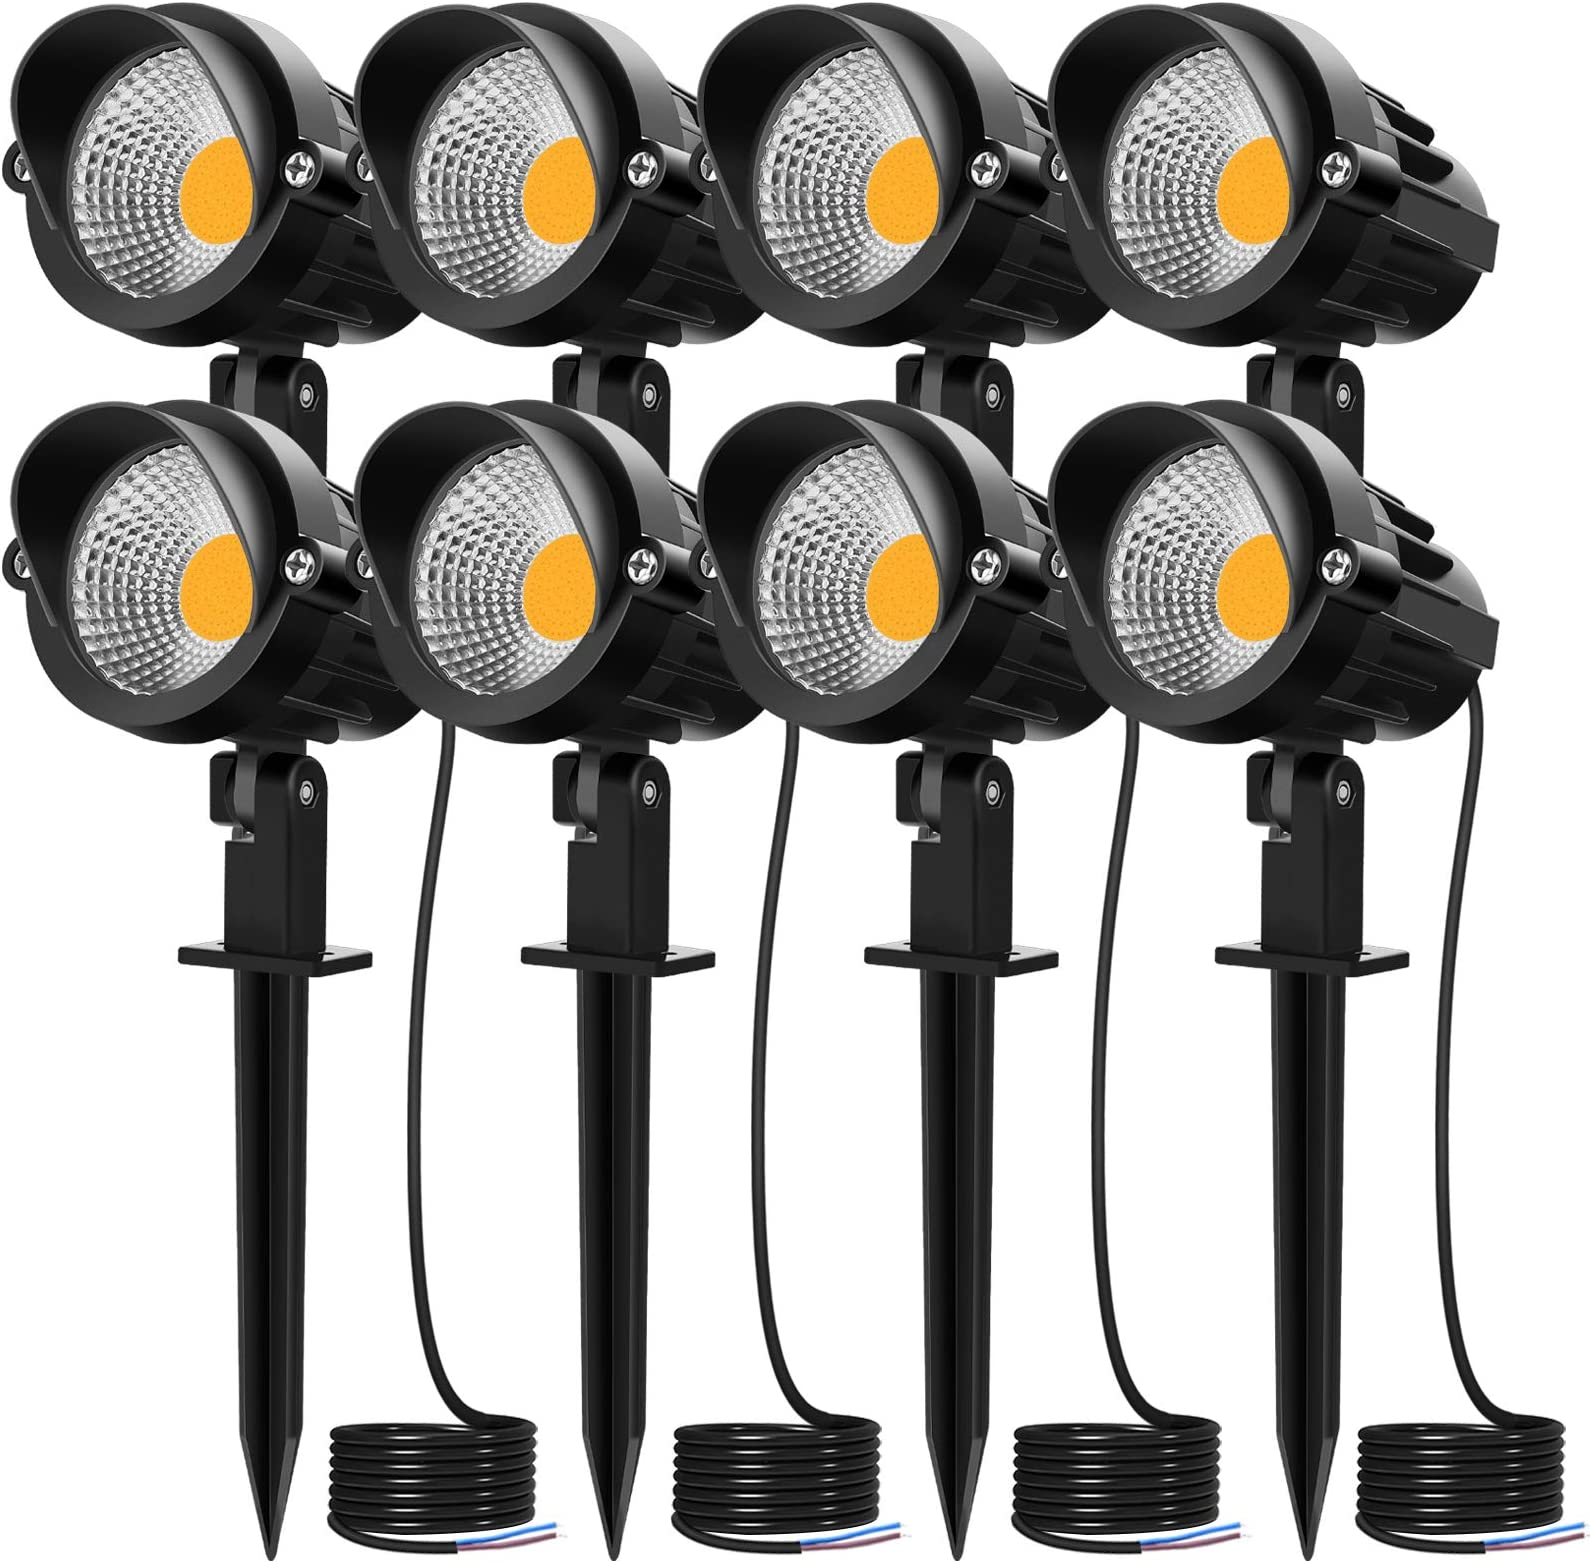 MEIKEE 7W LED Landscape Lights 12V 24V Low Voltage Landscape Lighting Garden Lights IP66 Waterproof Warm White Wall Tree Flag Spotlights with Spike Stand (8 Pack)